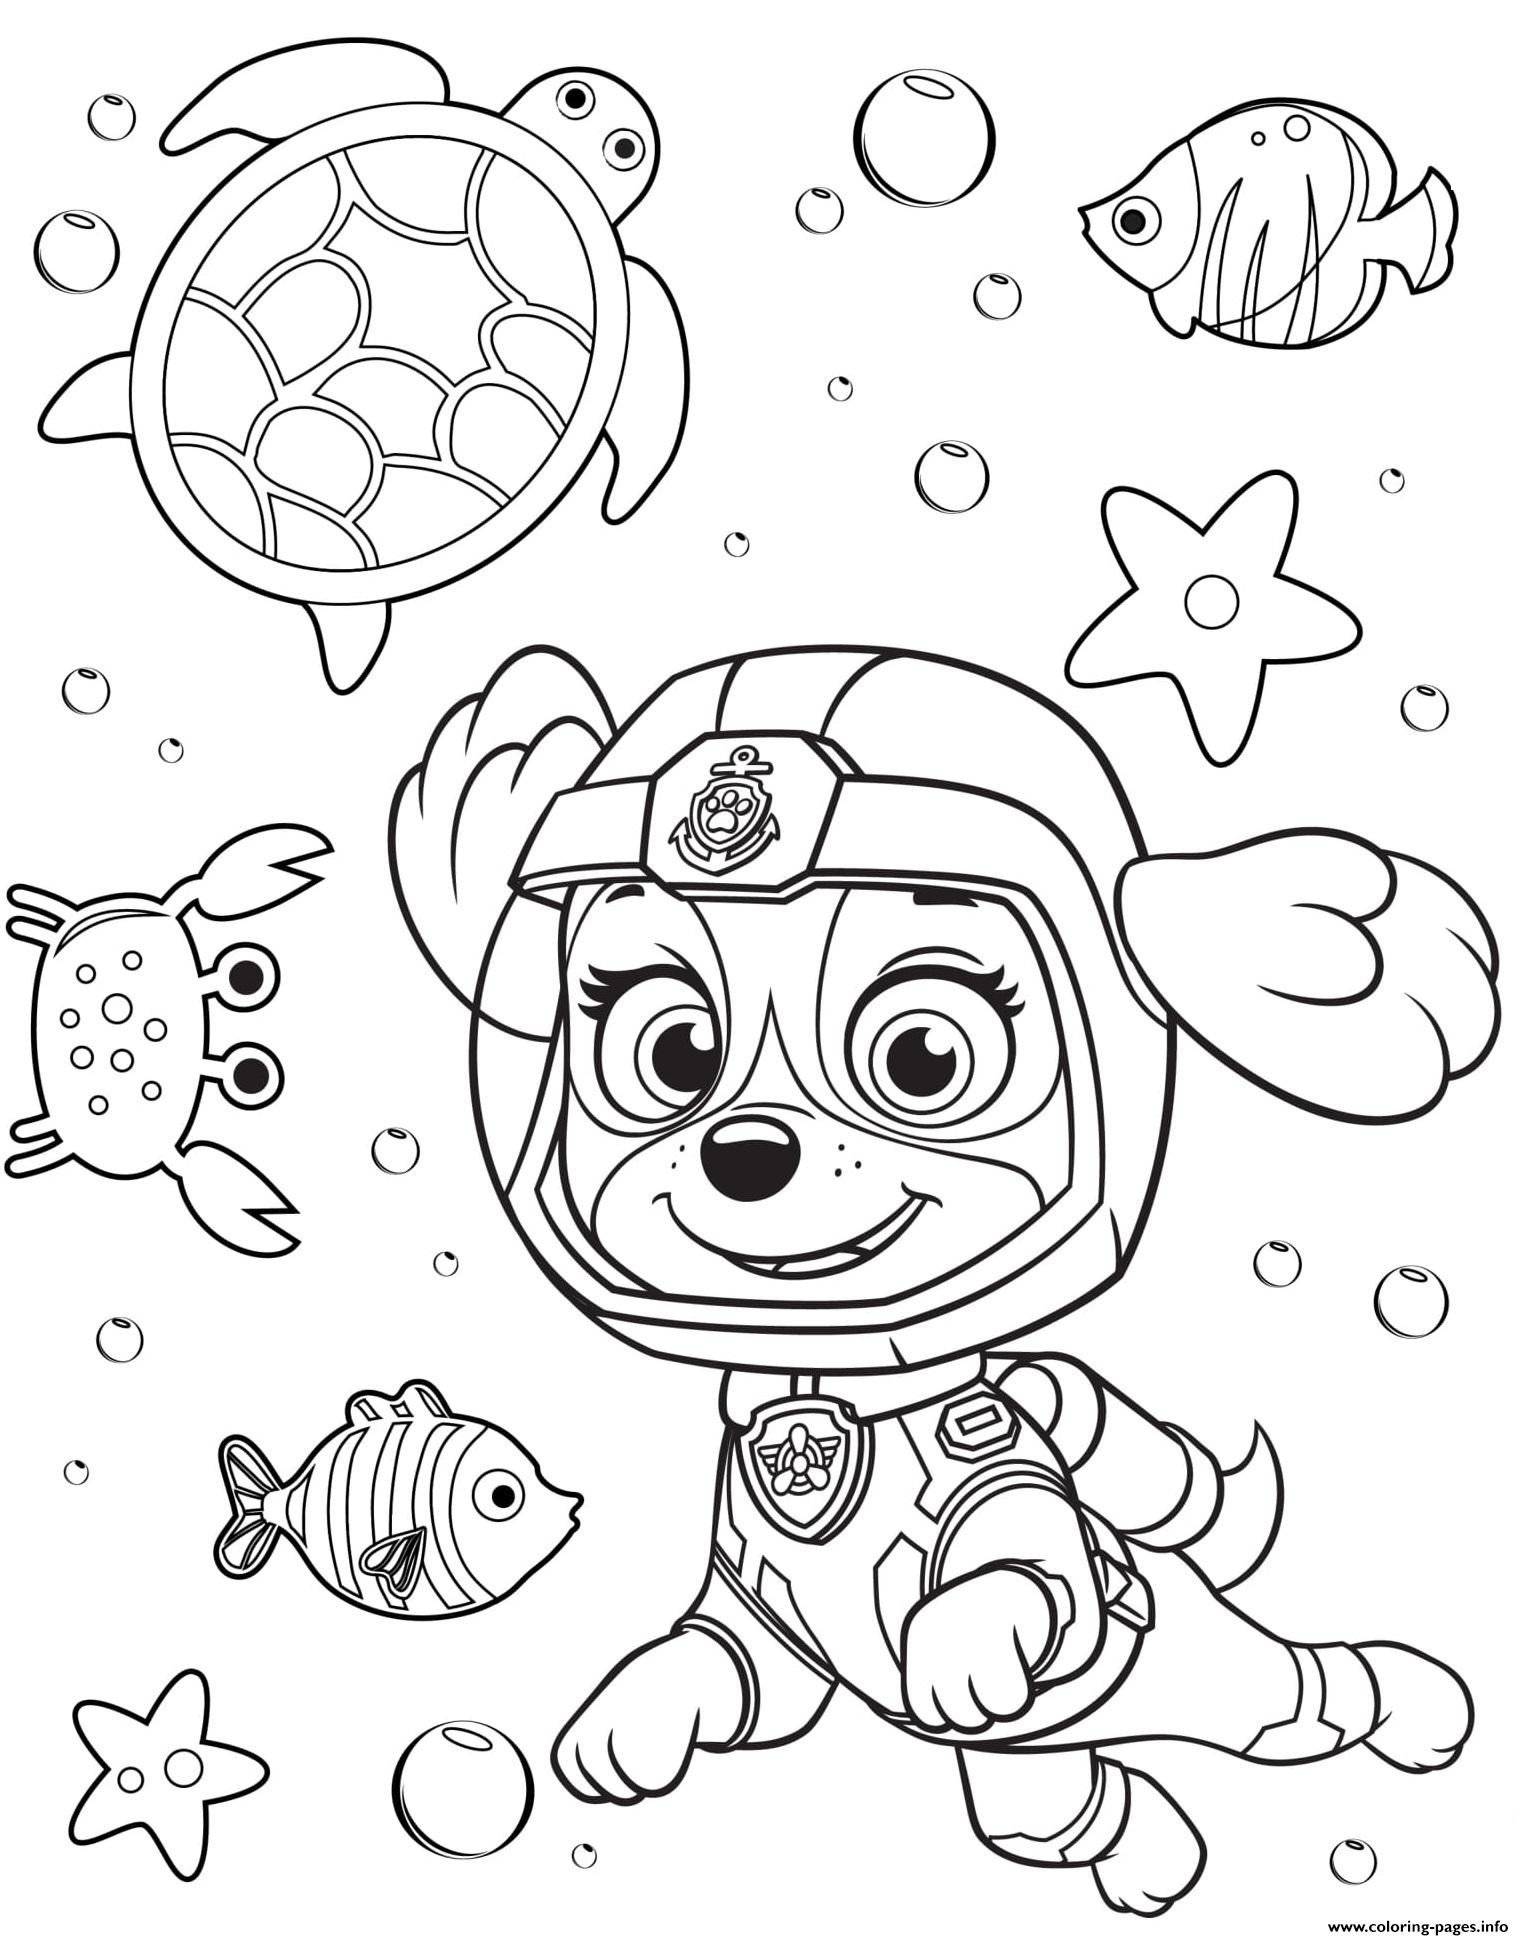 Best ideas about Paw Patrol Free Coloring Sheets . Save or Pin Sea Patrol Skye Paw Coloring Pages Printable Now.